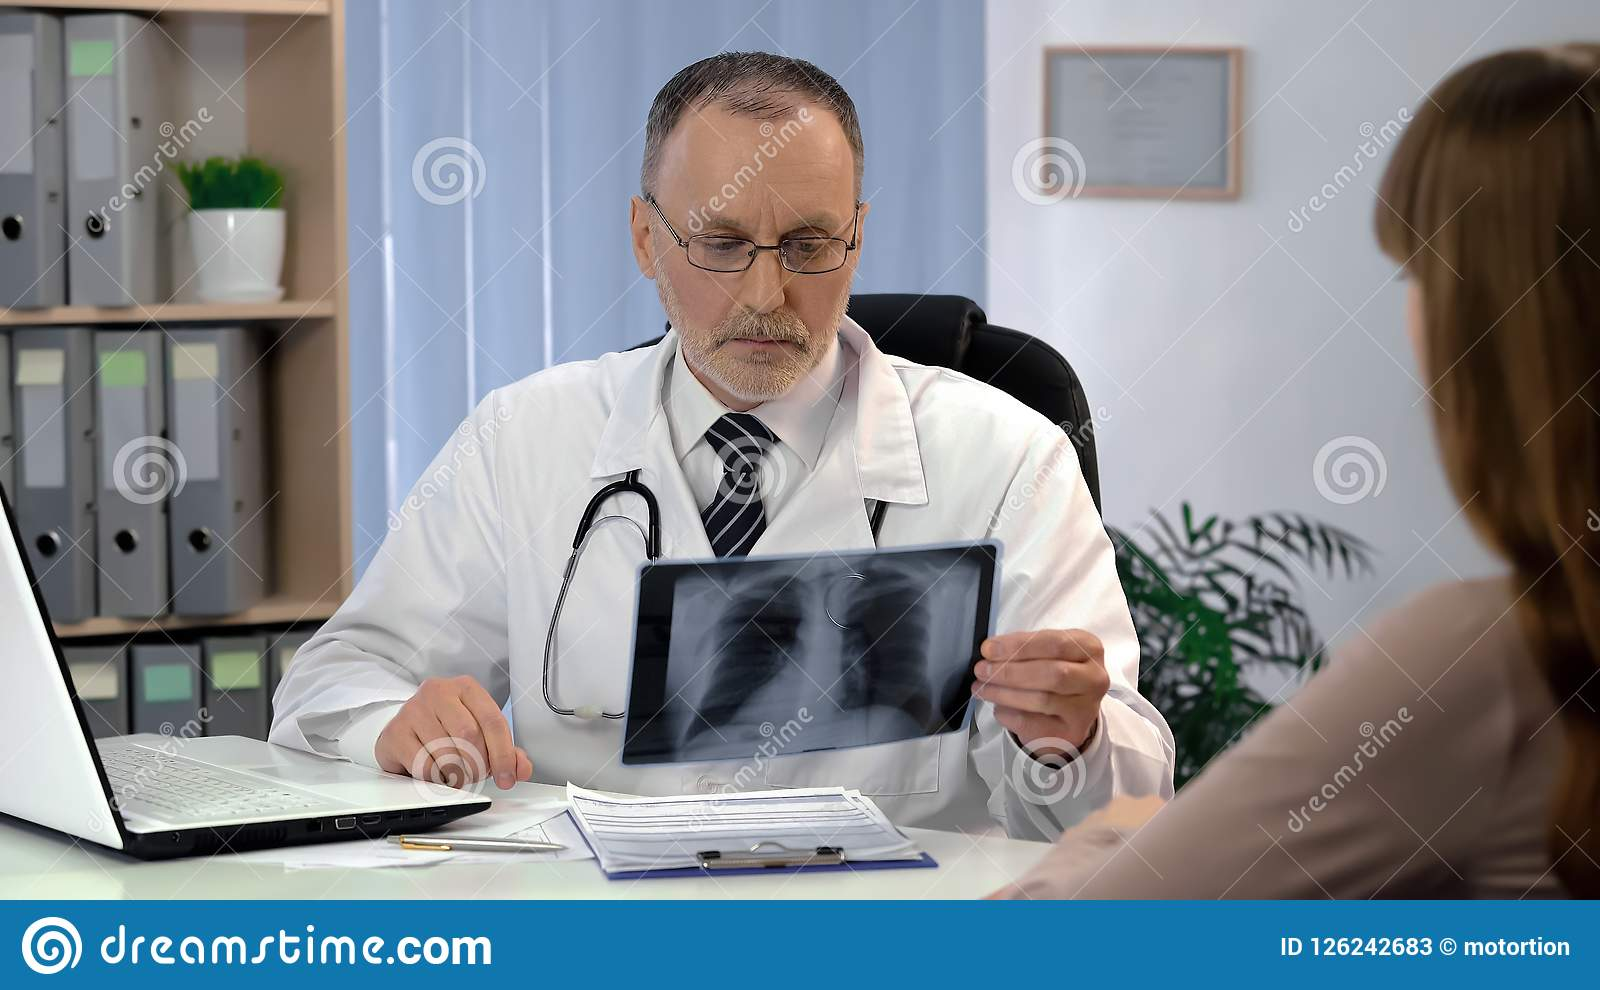 Doctor observing lungs x-ray, patient waiting for diagnosis, tuberculosis risk